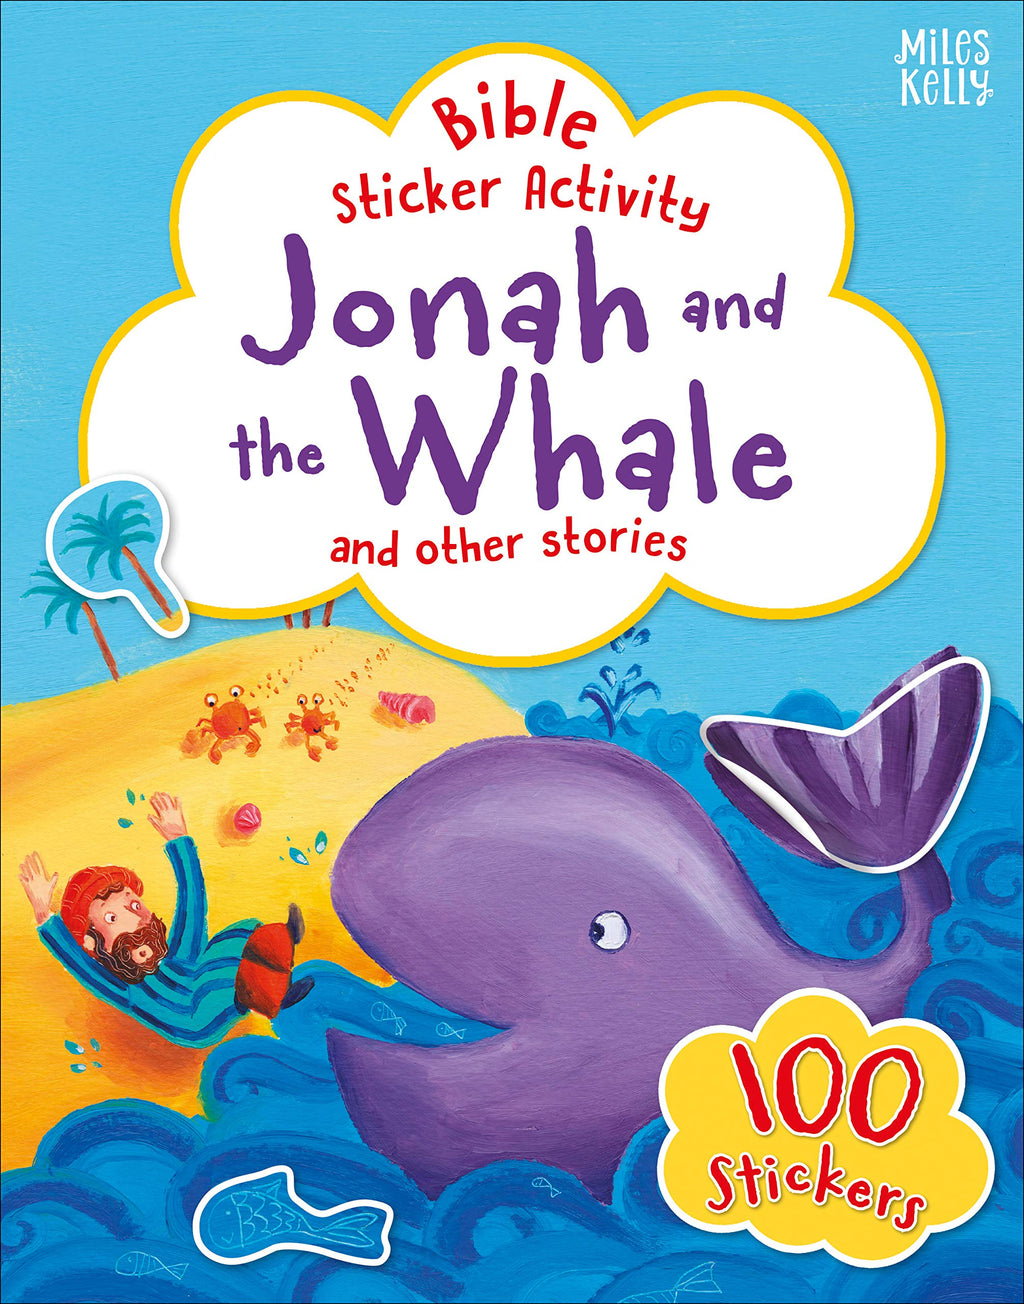 Bible Sticker Activity: Jonah and the Whale